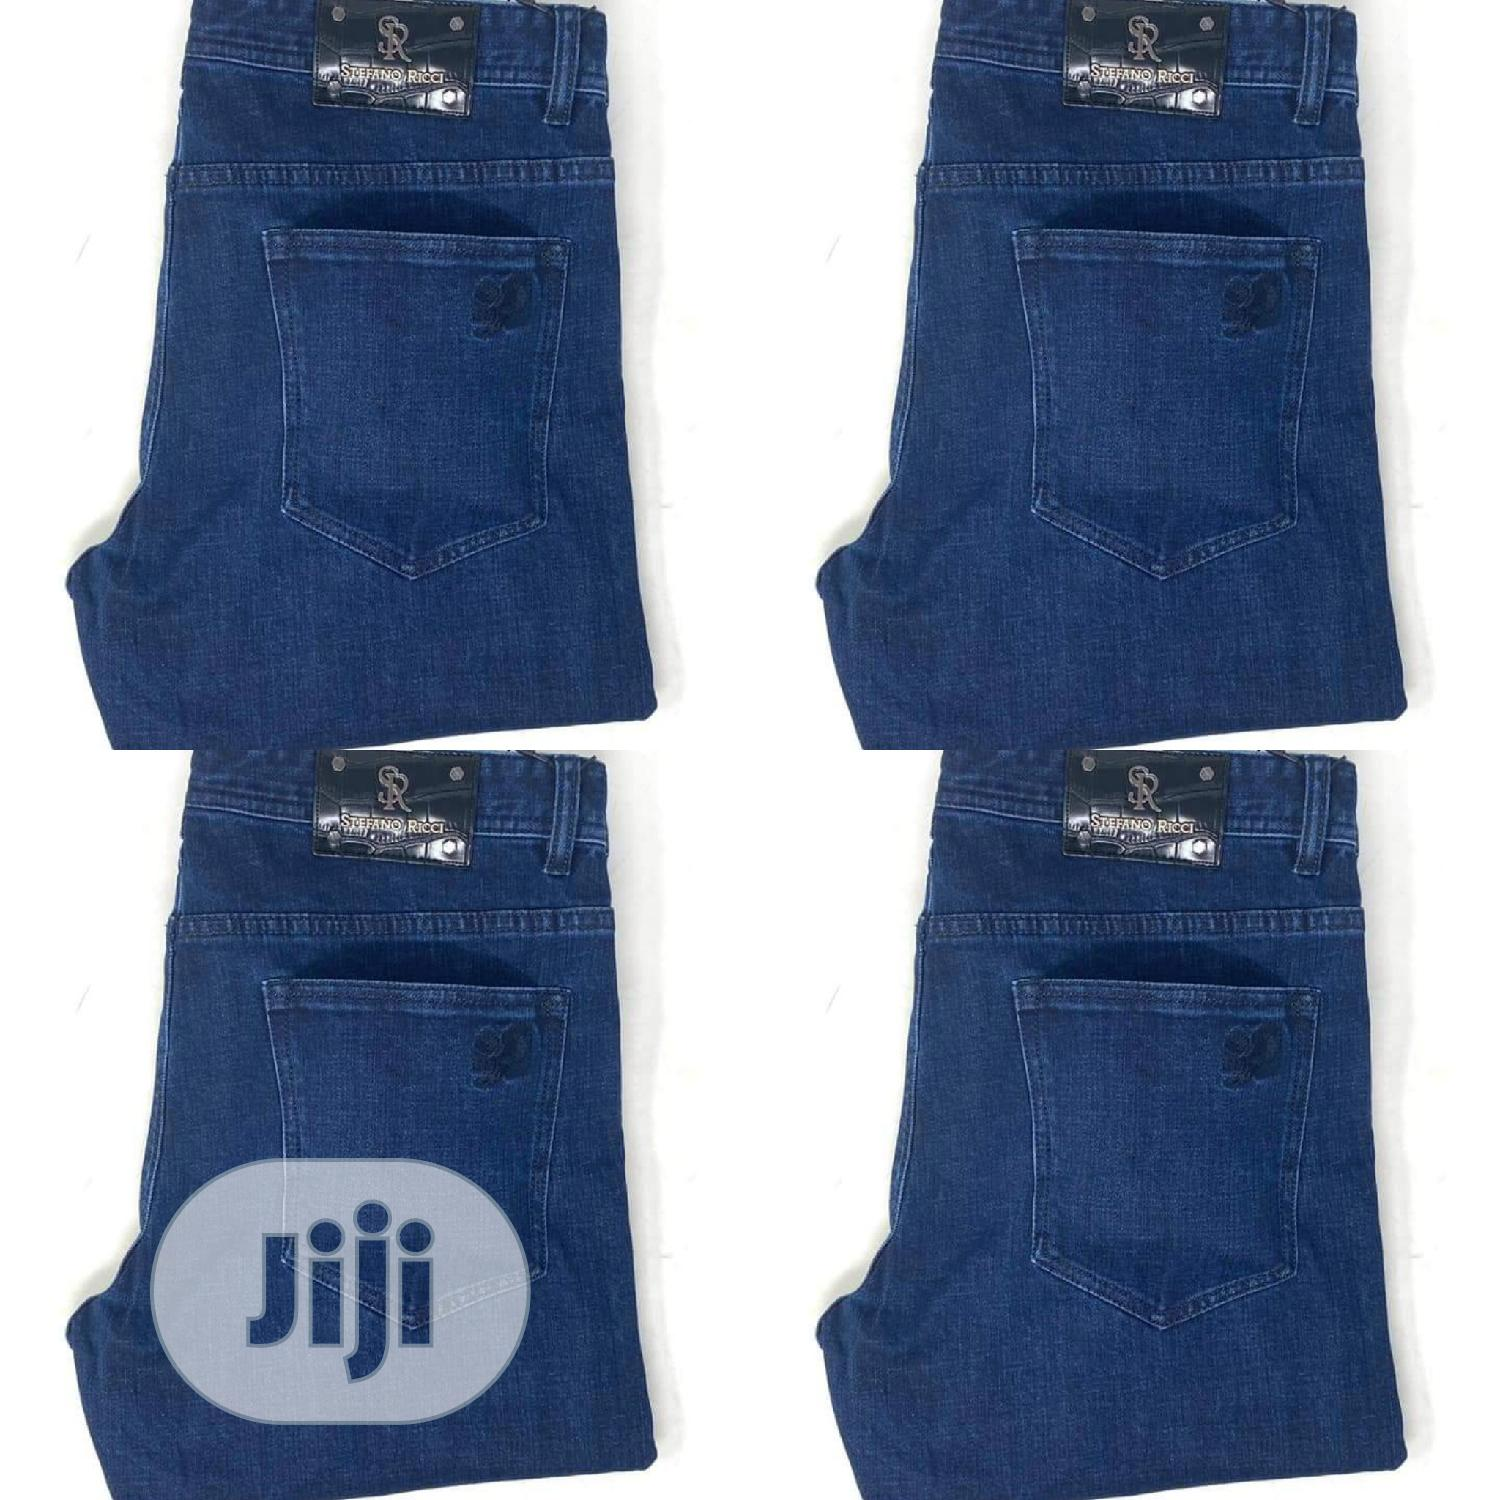 Stefaon Ricci Navy Blue Jeans Original   Clothing for sale in Surulere, Lagos State, Nigeria